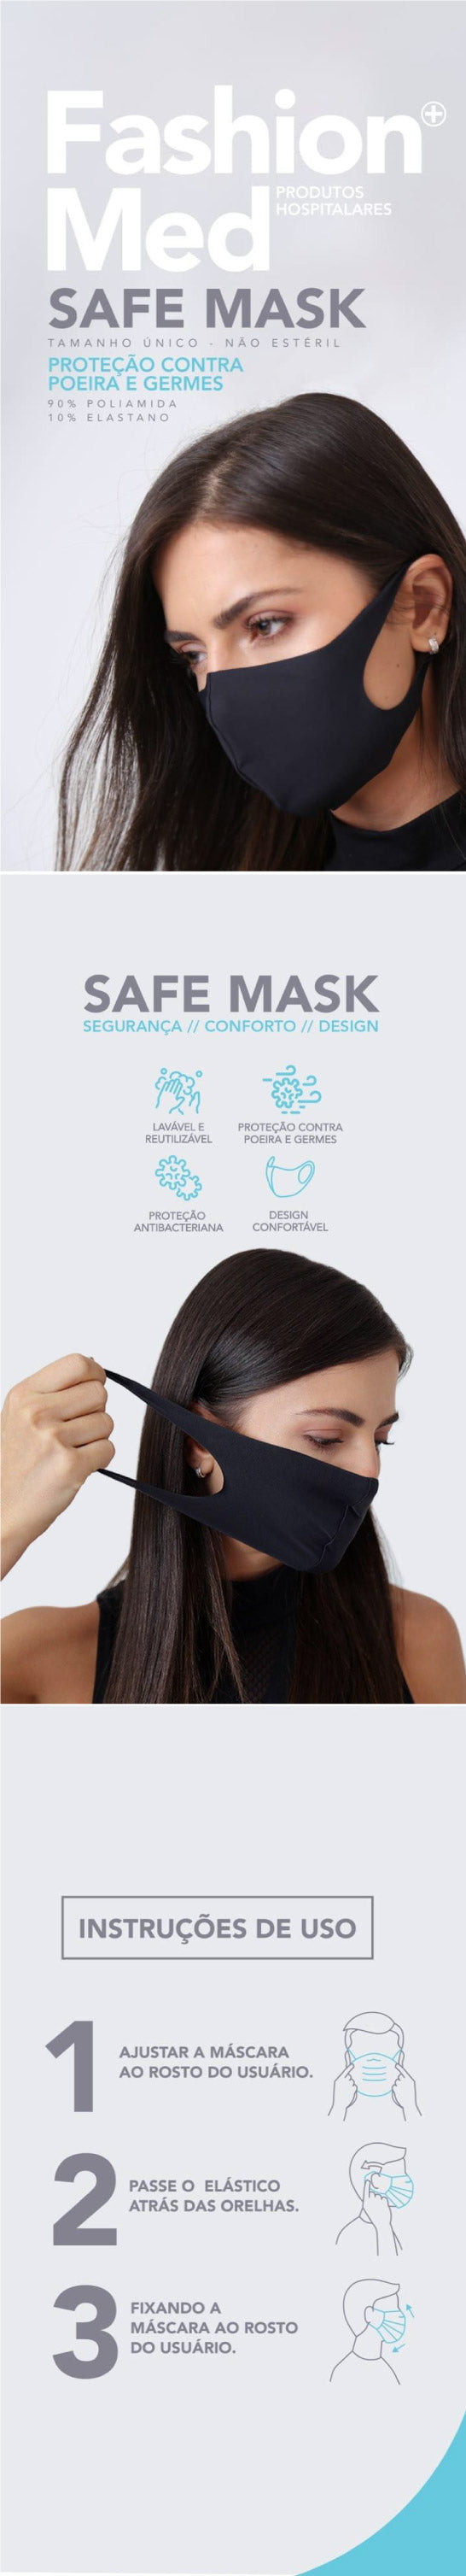 safemask-fashionmed